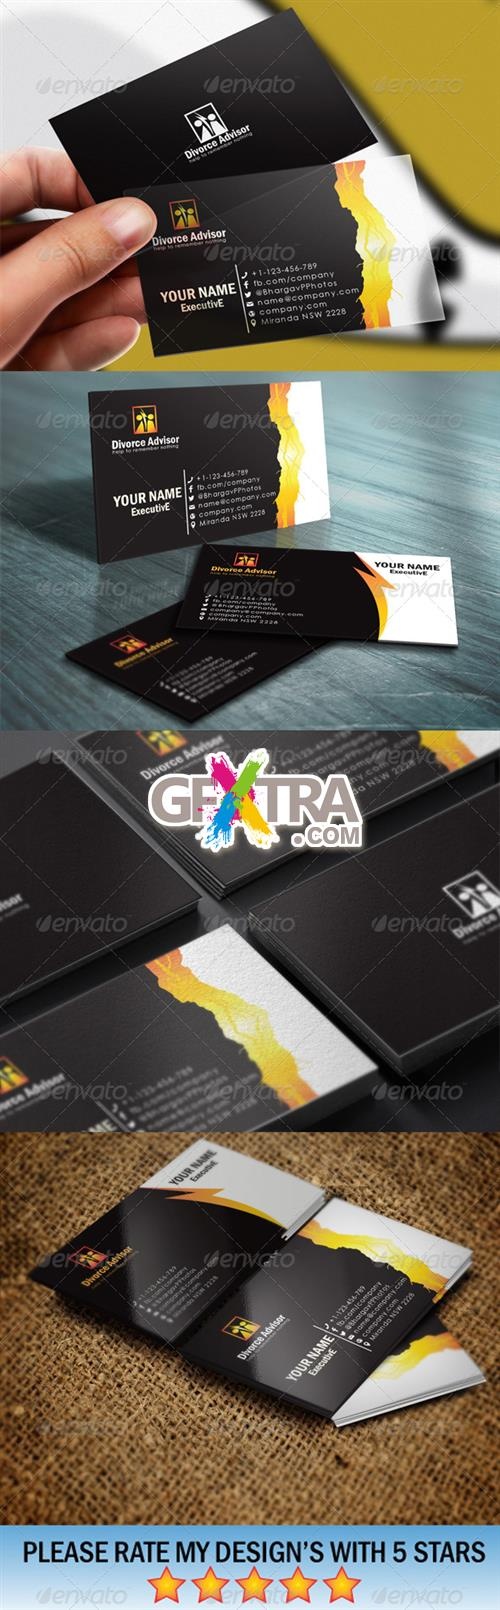 GraphicRiver - Divorce Advisory Business Card Templates